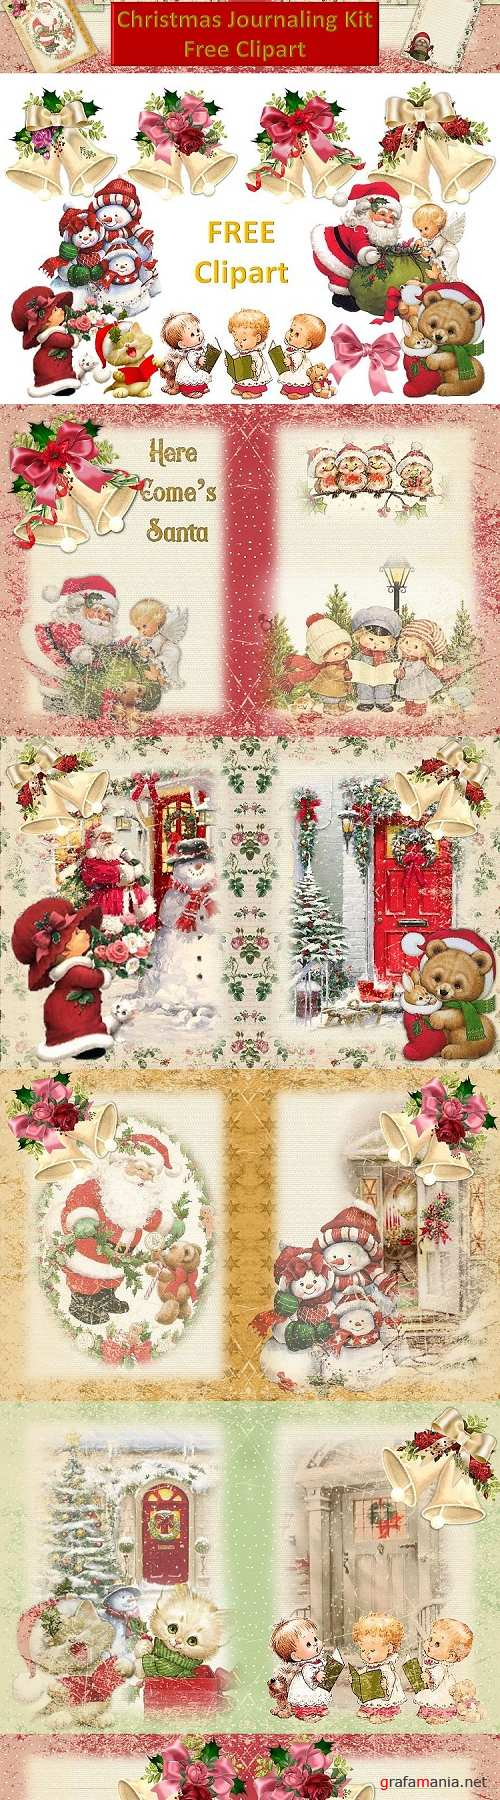 Christmas Fireside Journaling Kit CU with Free clipart - 299754